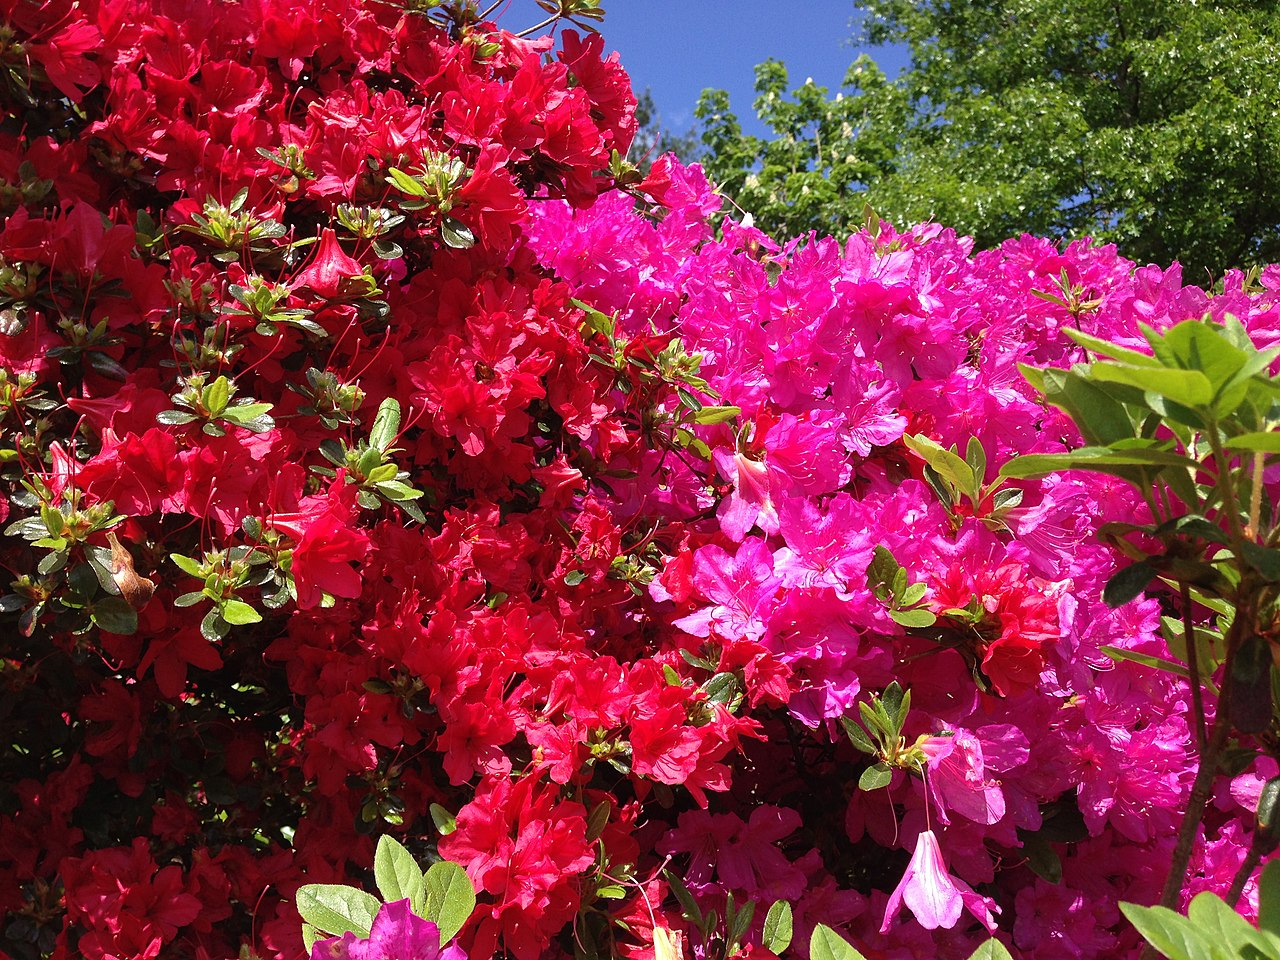 https://upload.wikimedia.org/wikipedia/commons/thumb/8/80/2014-05-17_10_24_50_Pink-purple-flowered_and_red-flowered_Azaleas_in_front_of_an_old_house_on_Spruce_Street_%28Mercer_County_Route_613%29_in_Ewing%2C_New_Jersey.JPG/1280px-2014-05-17_10_24_50_Pink-purple-flowered_and_red-flowered_Azaleas_in_front_of_an_old_house_on_Spruce_Street_%28Mercer_County_Route_613%29_in_Ewing%2C_New_Jersey.JPG